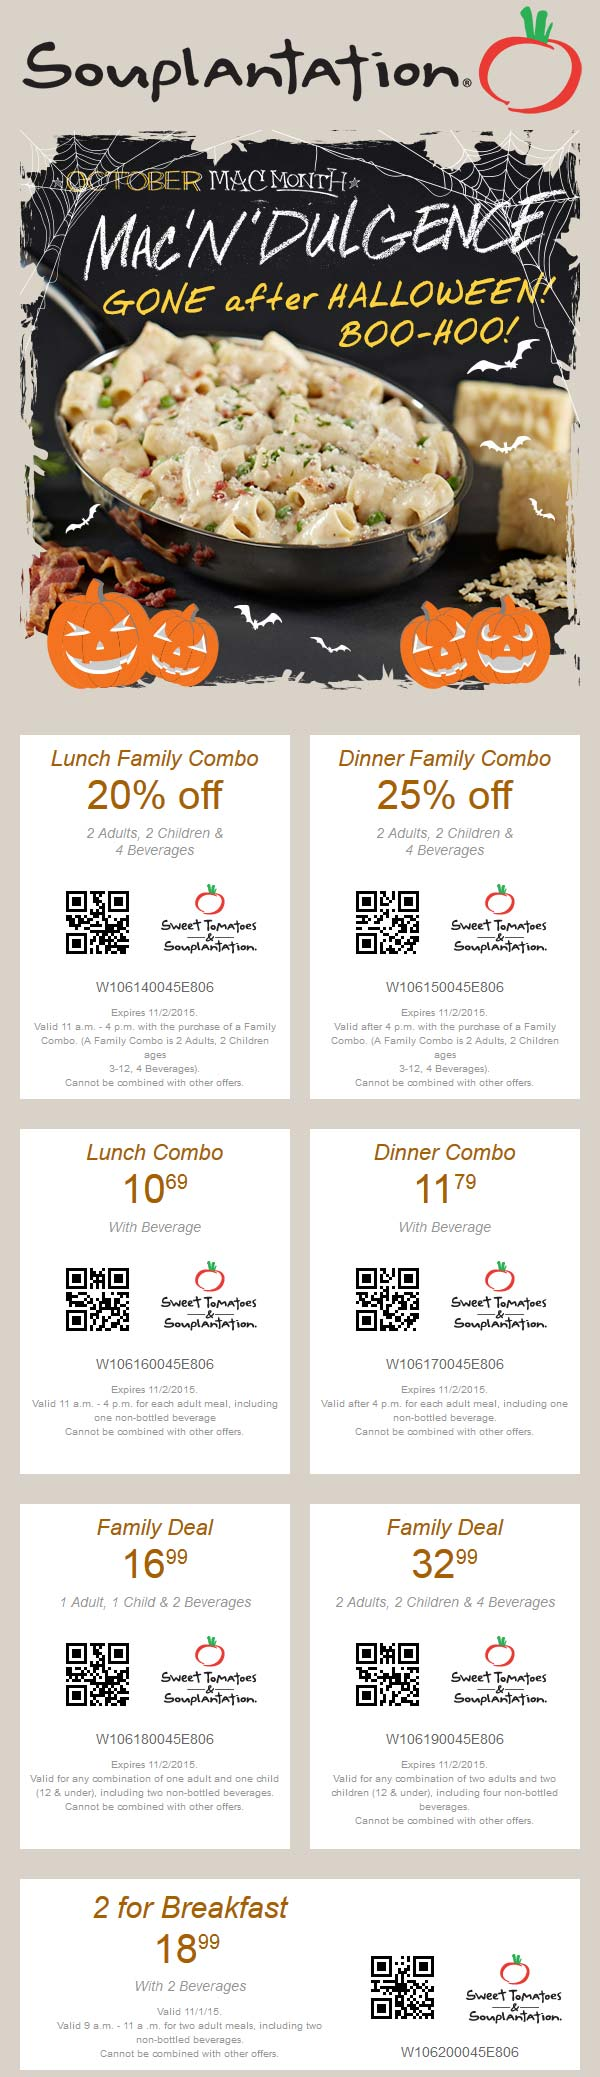 Sweet Tomatoes Coupon August 2017 20% off lunch, 25% off dinner & more at Souplantation & Sweet Tomatoes